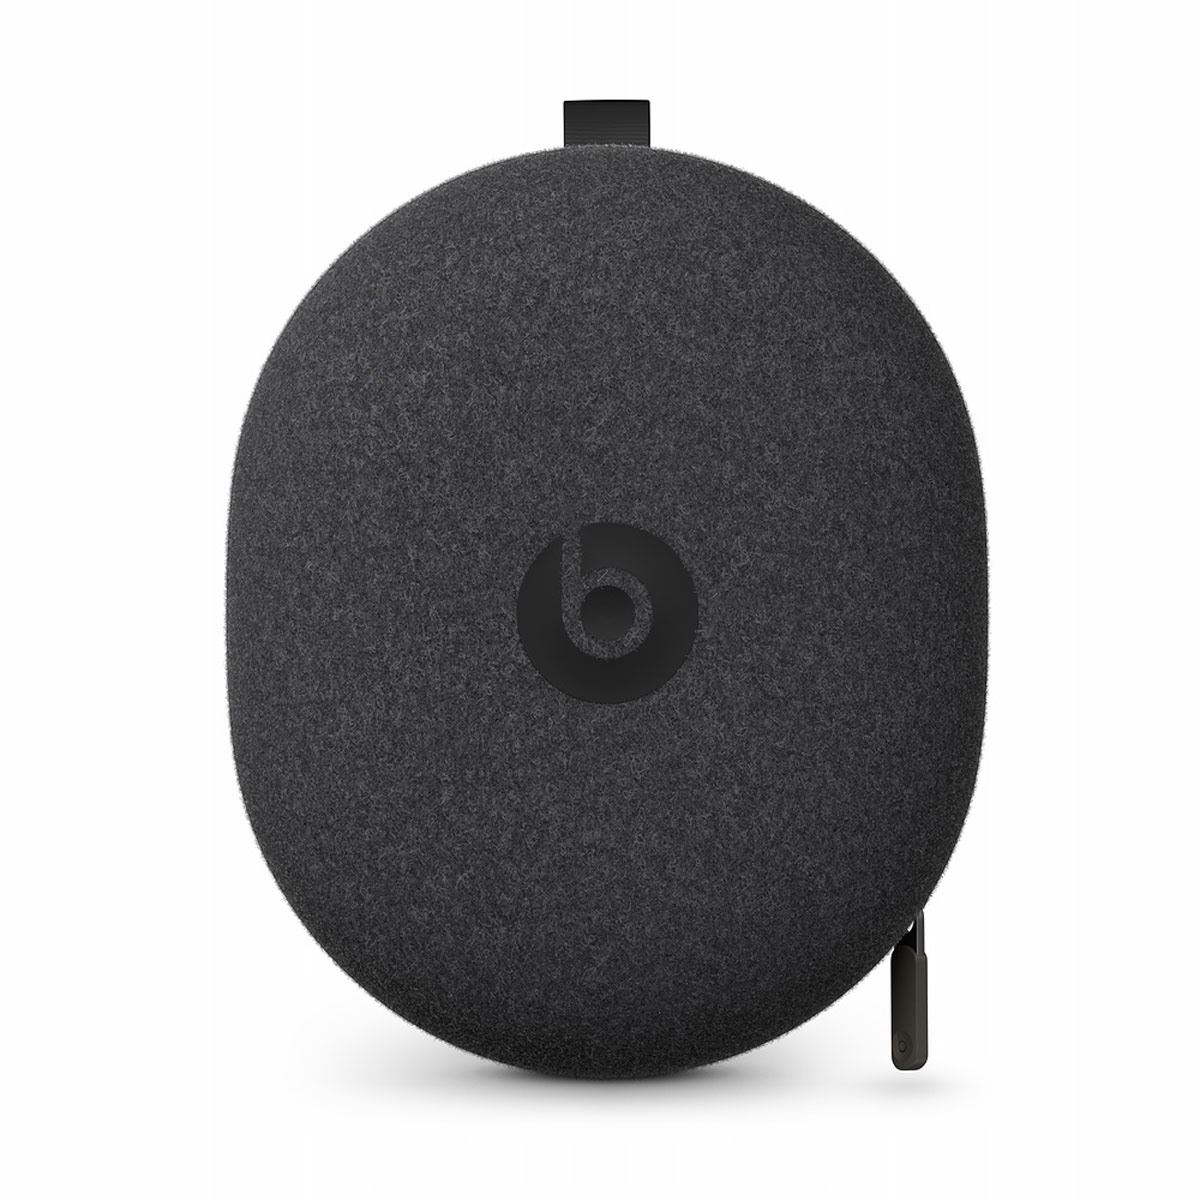 Audífonos Beats Solo Pro Wireless Blancos